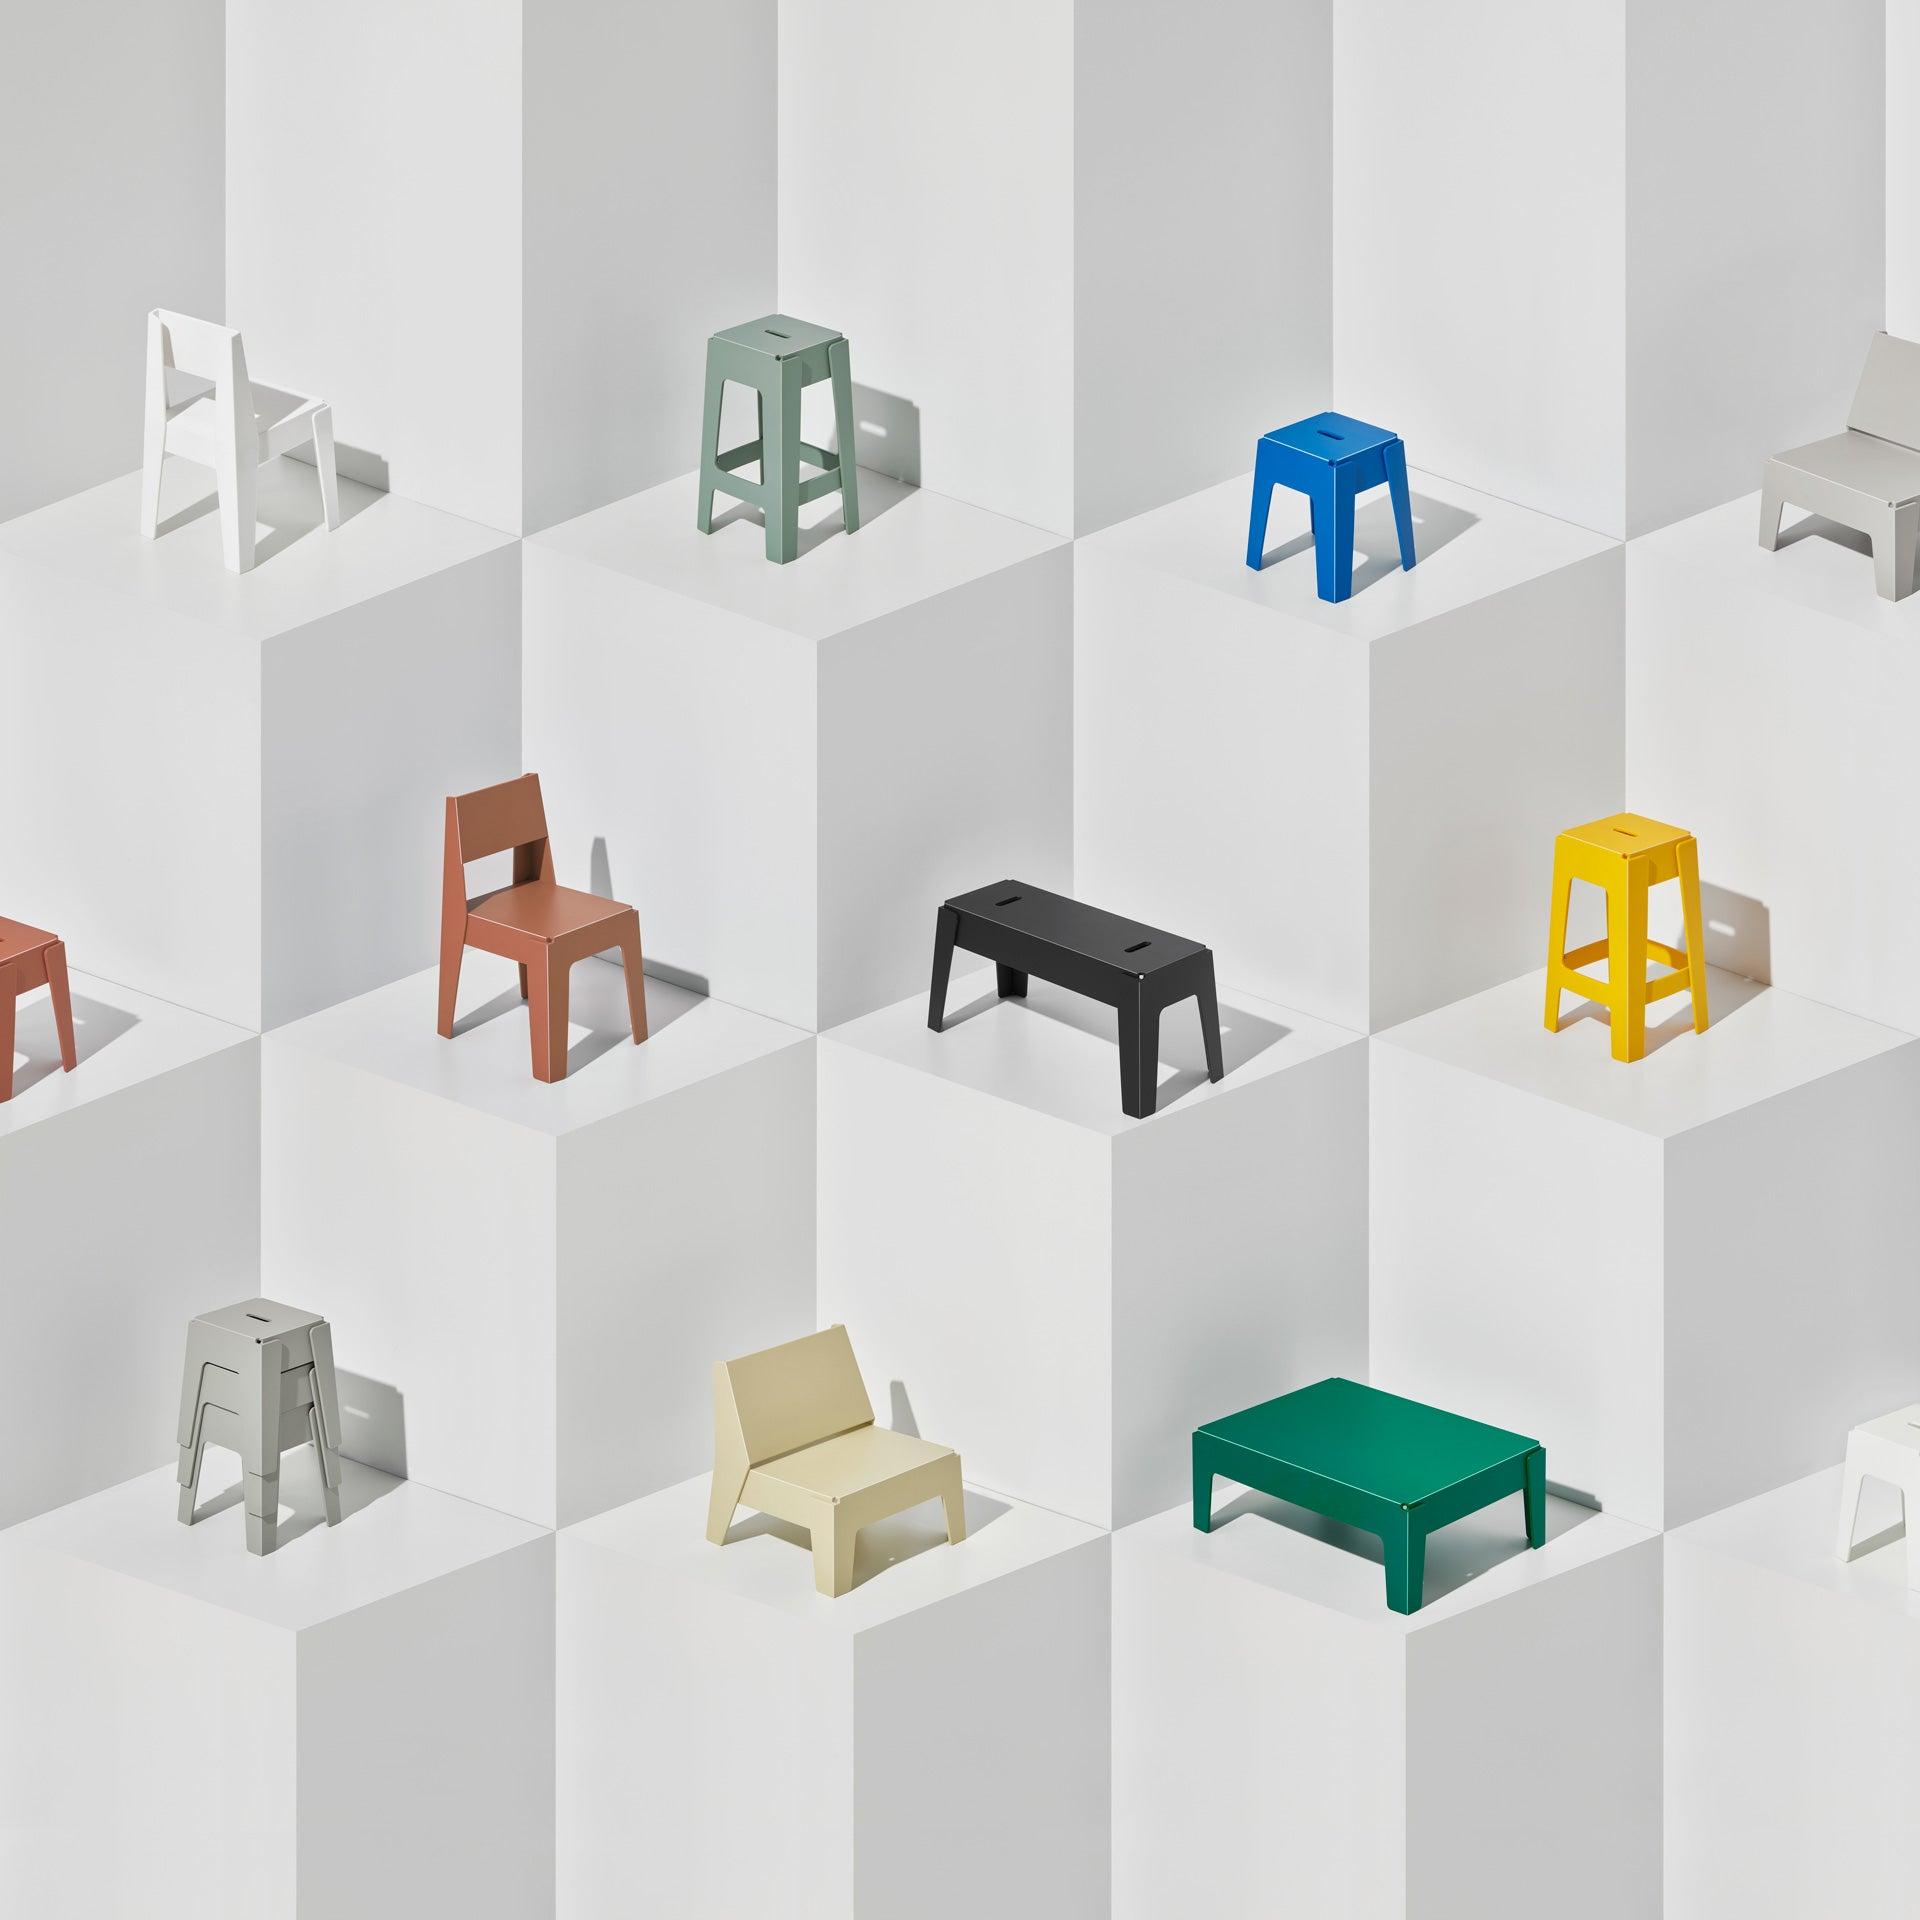 Butter Collection   Recycled Plastic Furniture   Indoor Outdoor Waterproof   Gibson Karlo   DesignByThem